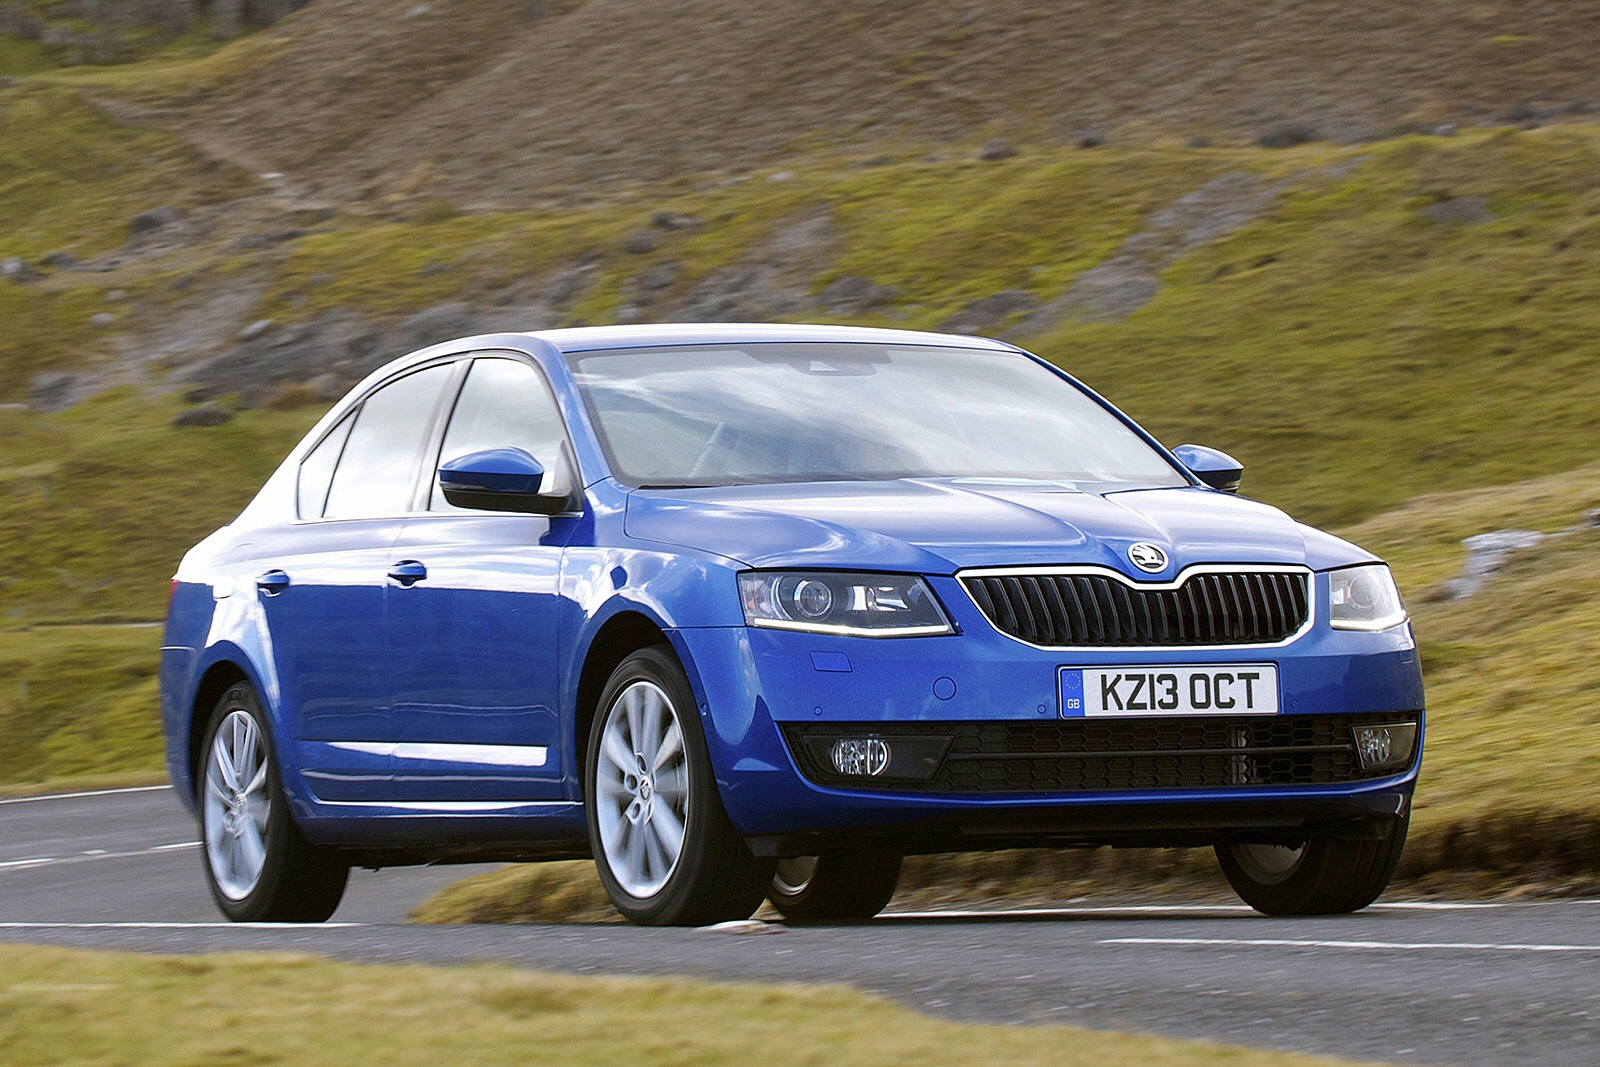 Image two of a Skoda Octavia 1.6 TDI